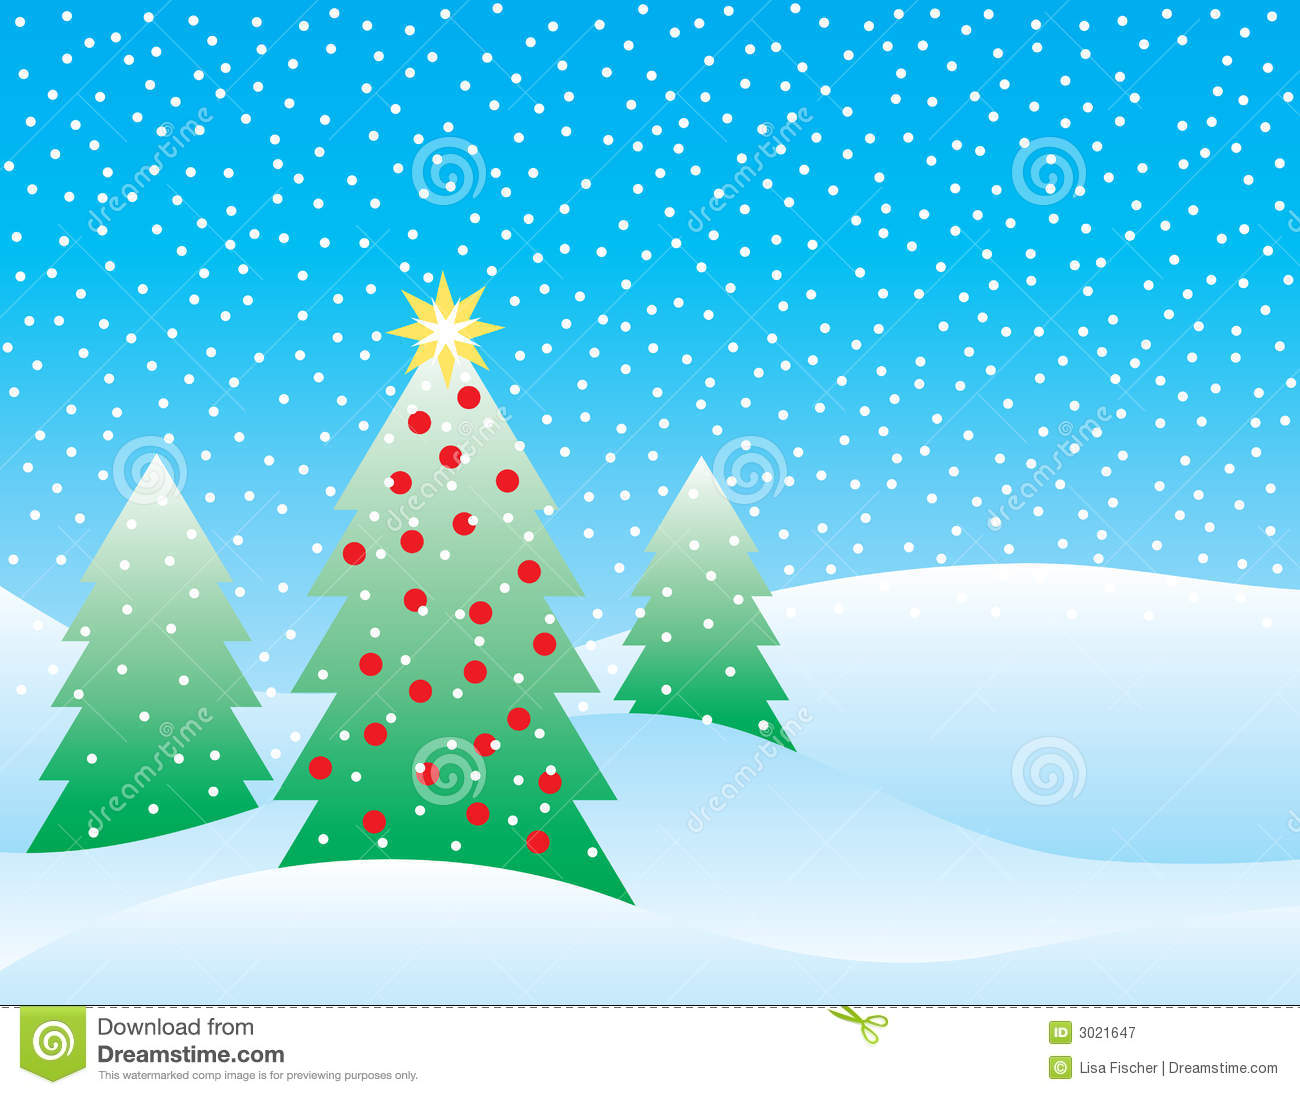 Snowy Christmas Scene Royalty Free Stock Photography - Image: 3021647